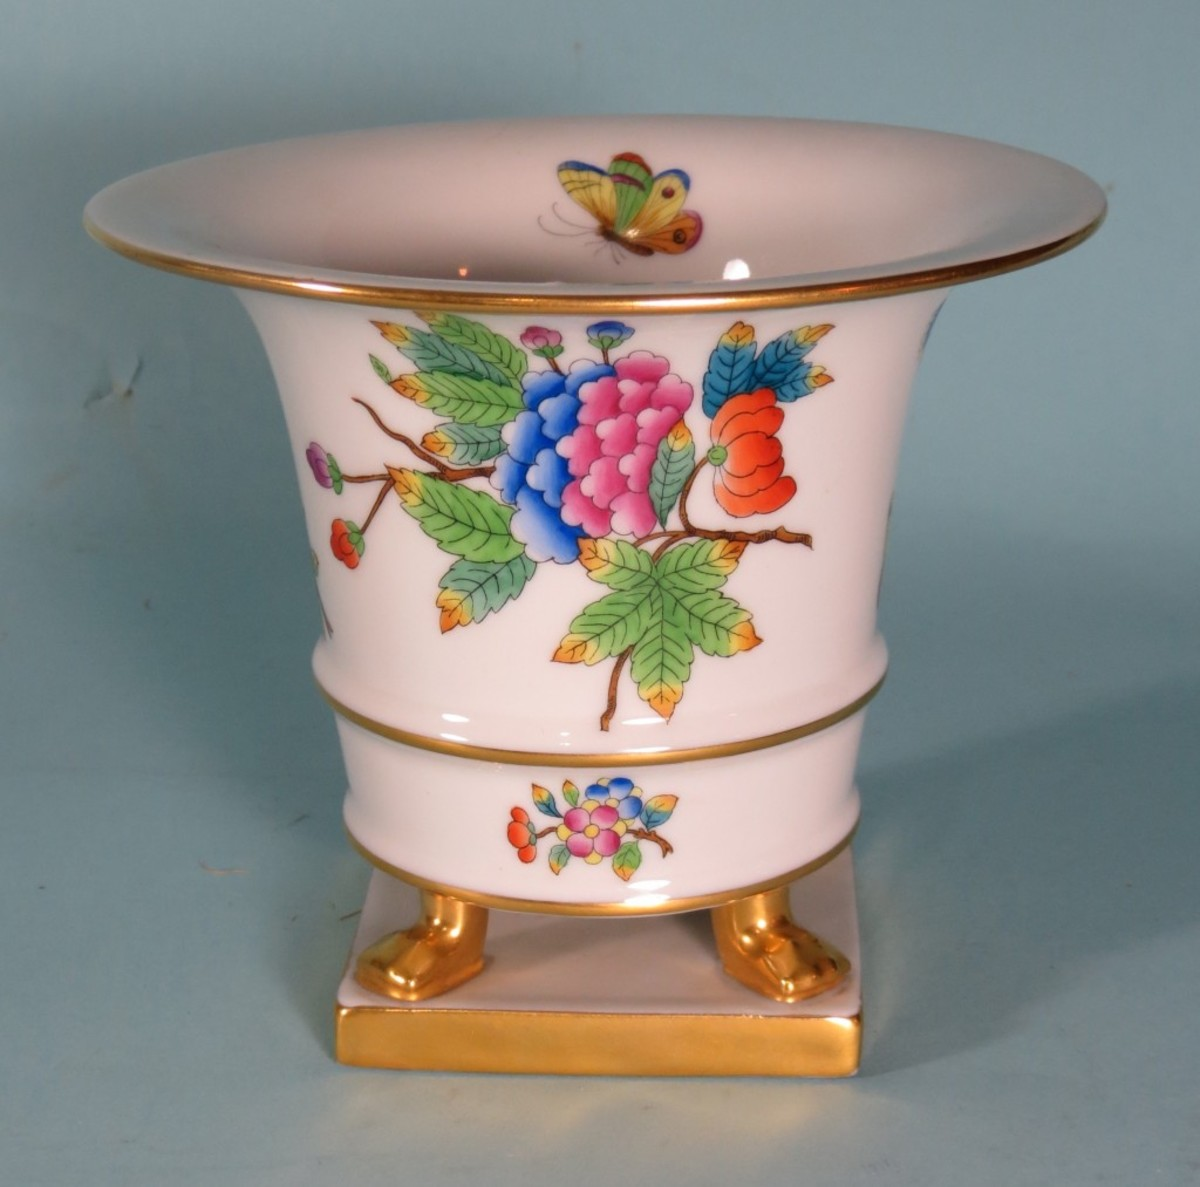 Historic Herend porcelain vase presented to Adolf Hitler in 1937 by Admiral Miklos Horthy, Regent of Hungary